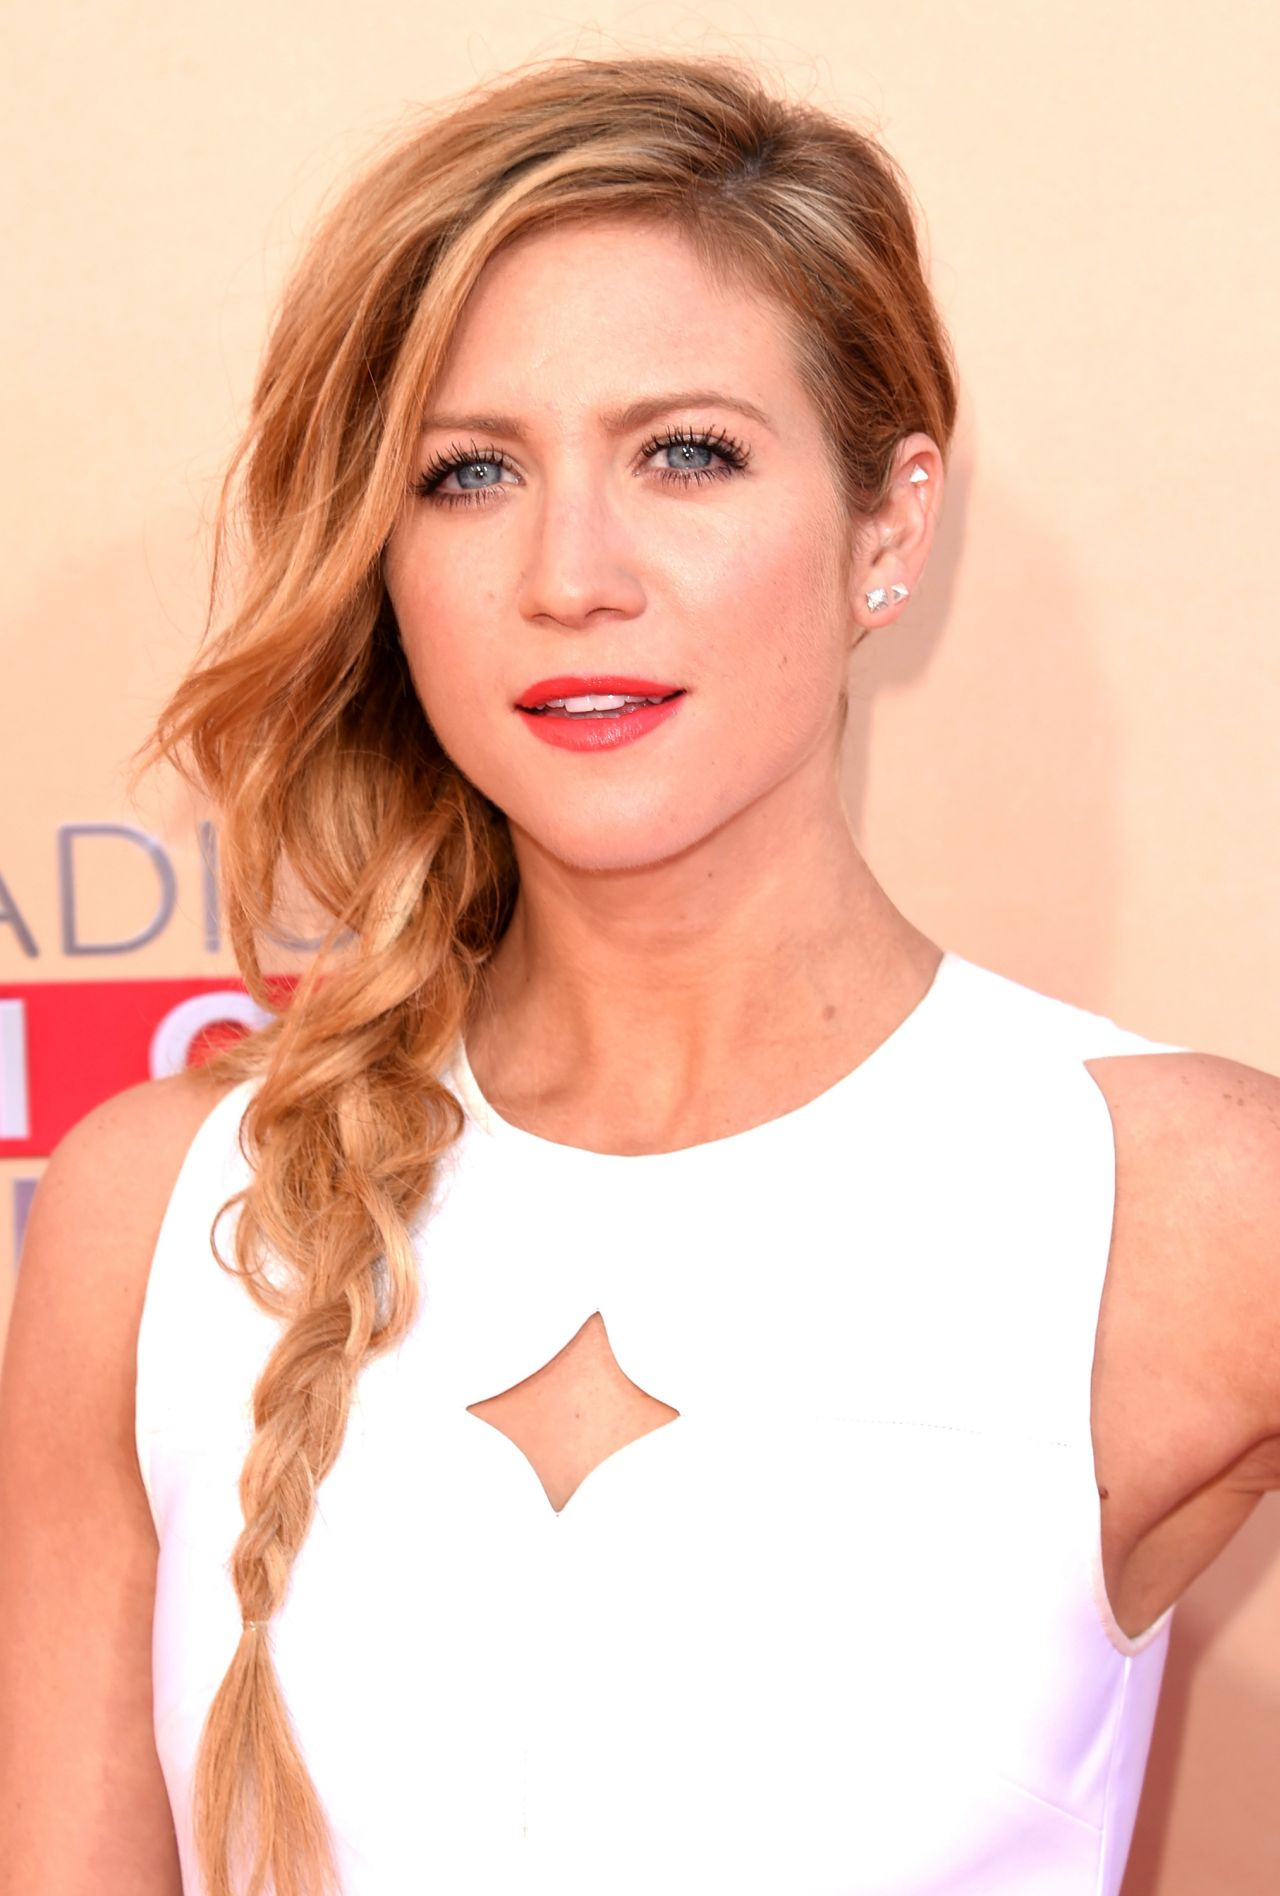 1000+ ideas about Brittany Snow Hair on Pinterest ... Brittany Snow